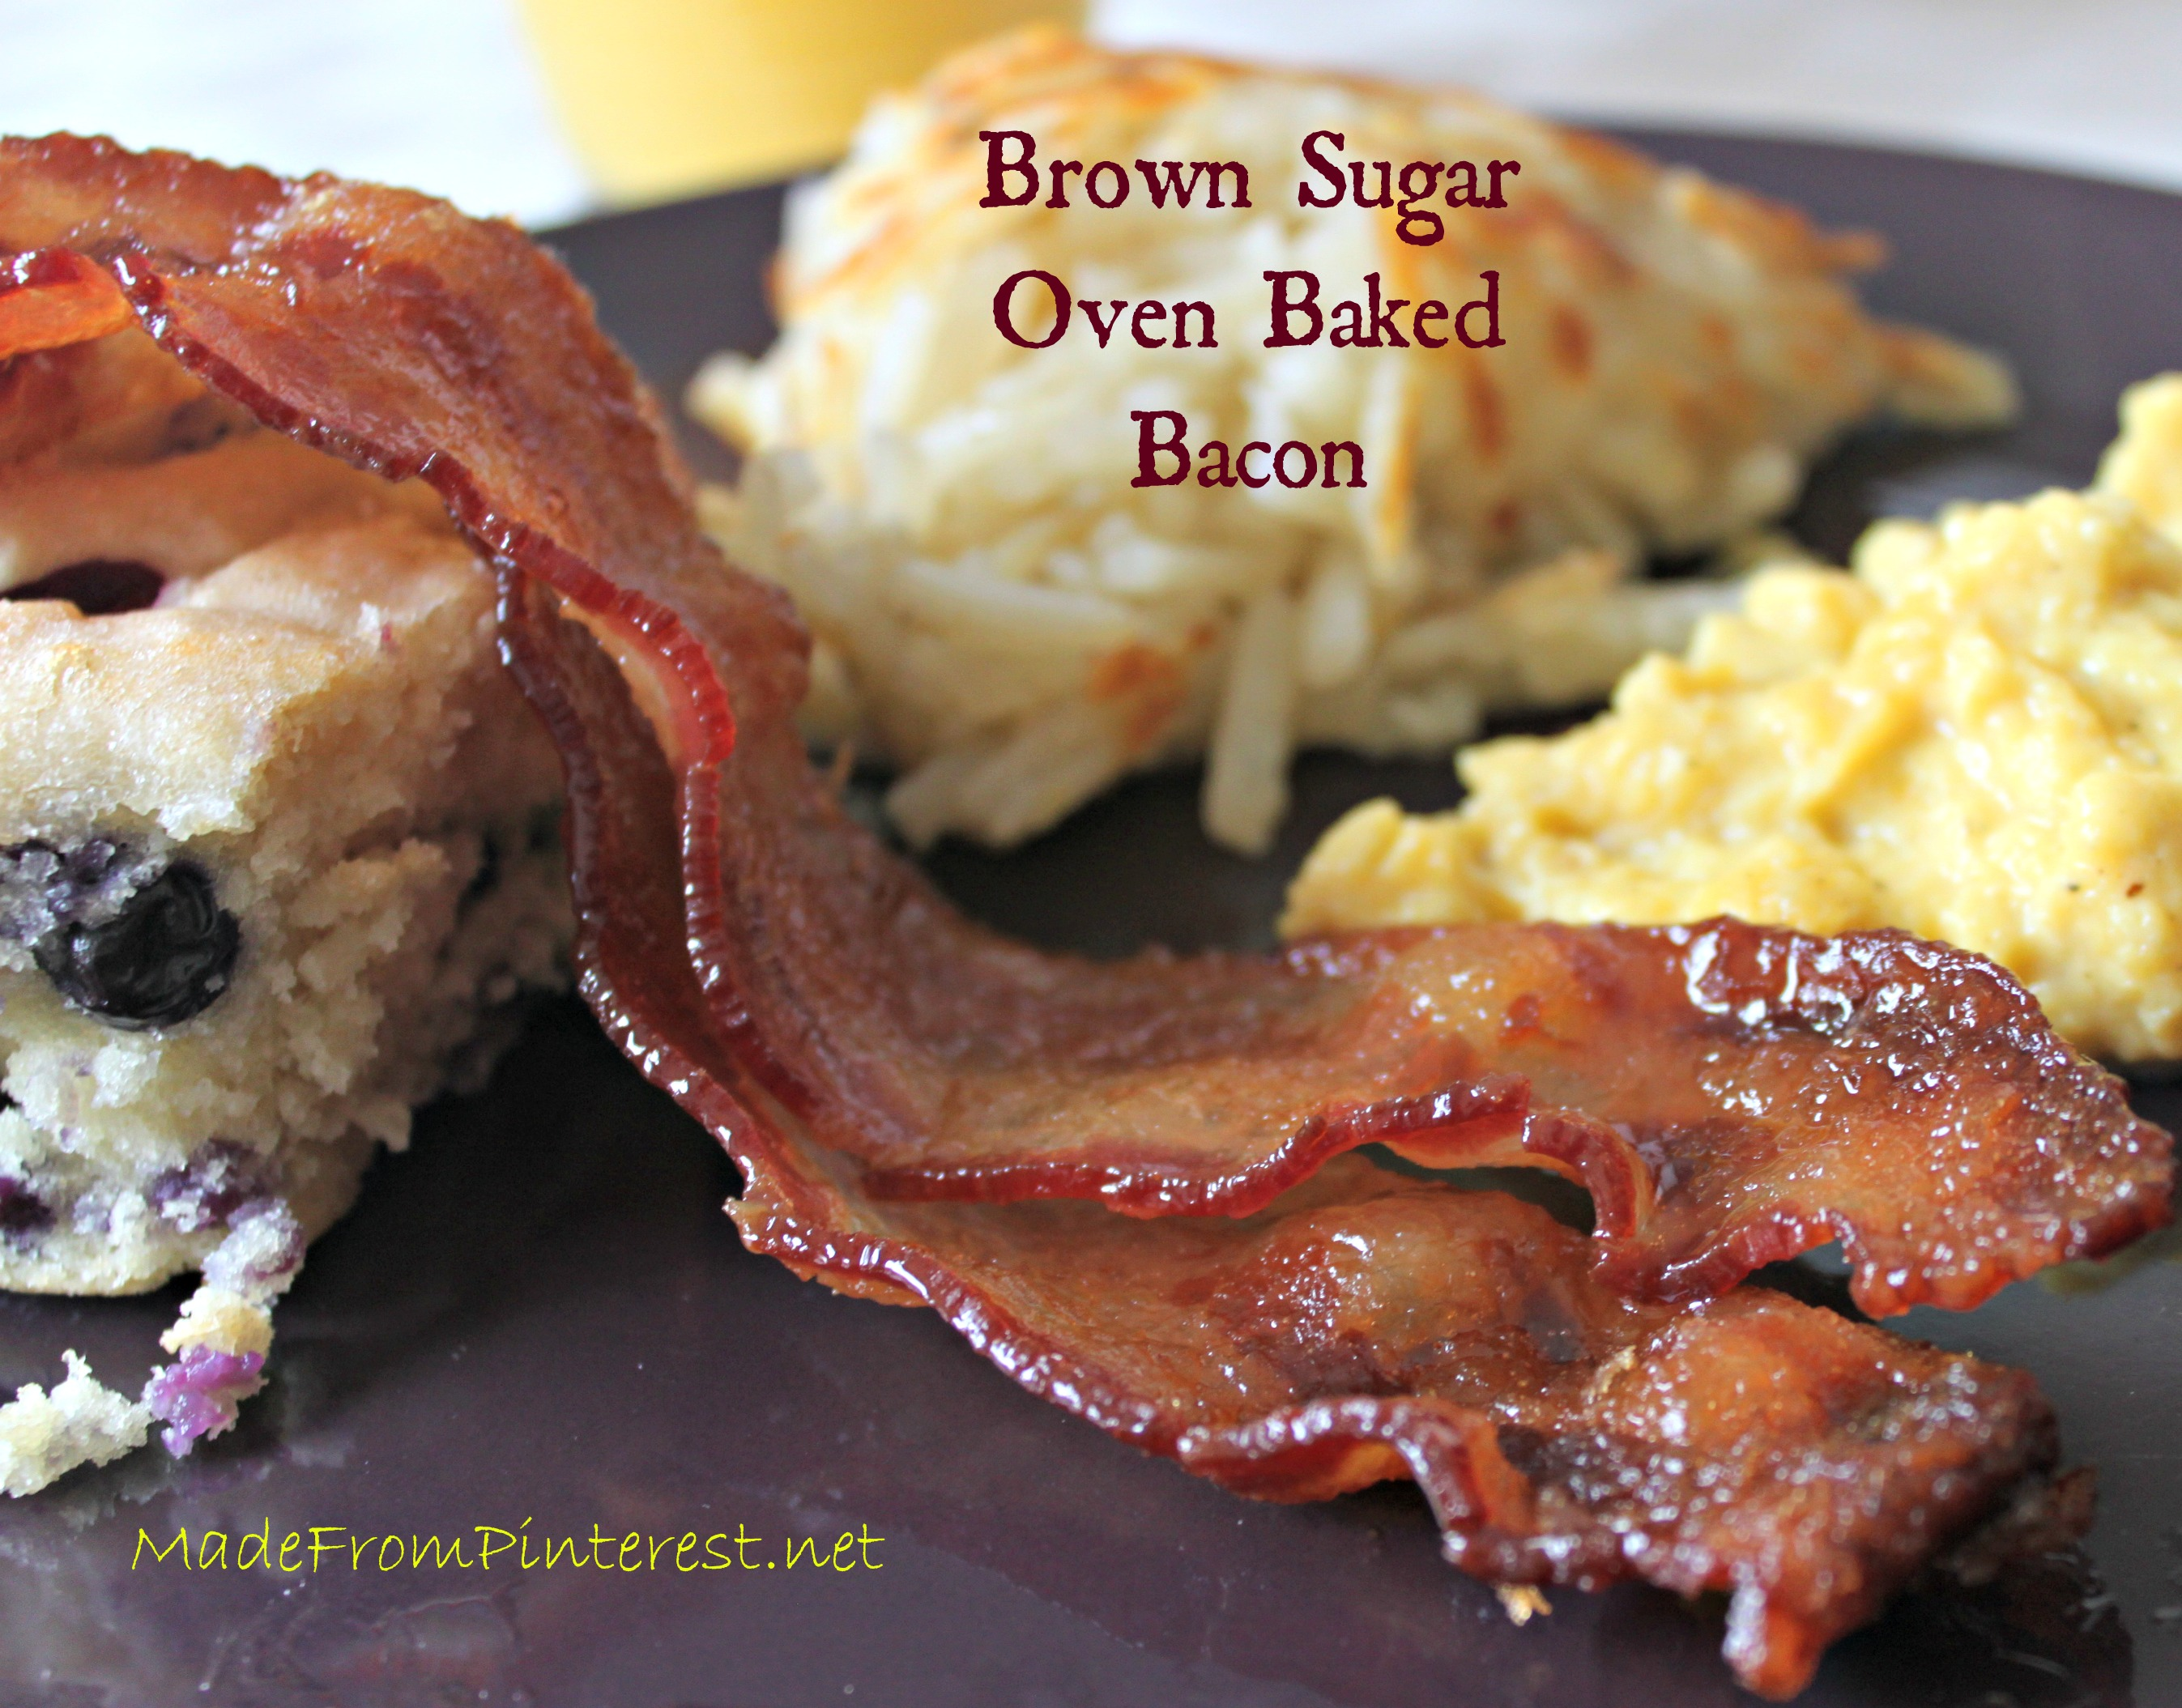 Brown Sugar Oven Baked Bacon